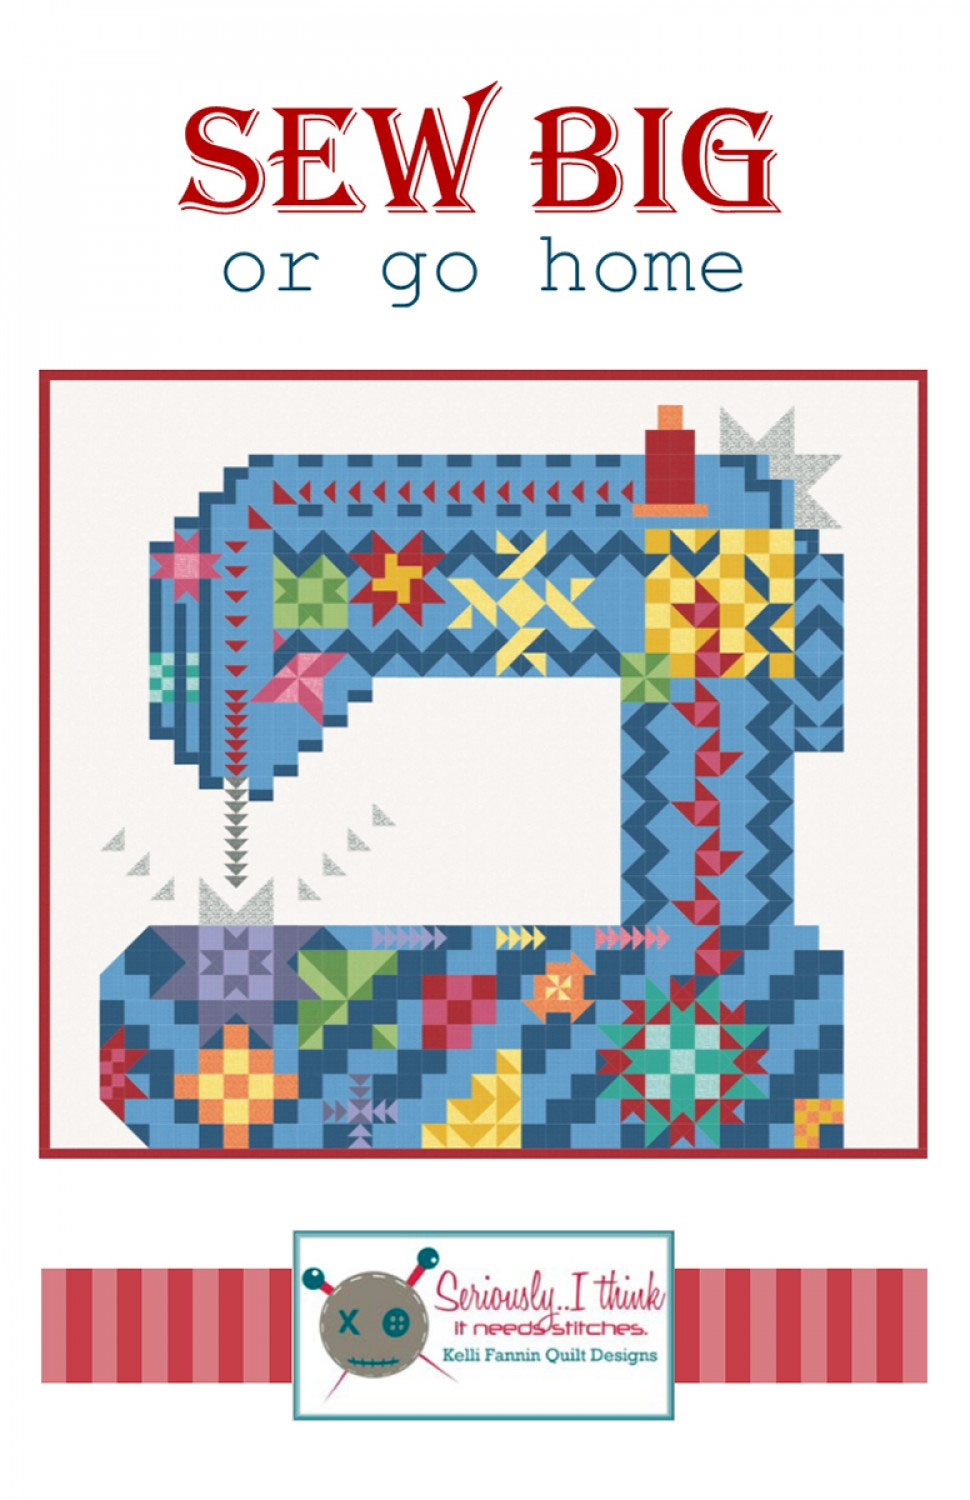 sew-big-or-go-home-quilt-sewing-pattern-Kelli-Fannin-Quilt-Designs-front